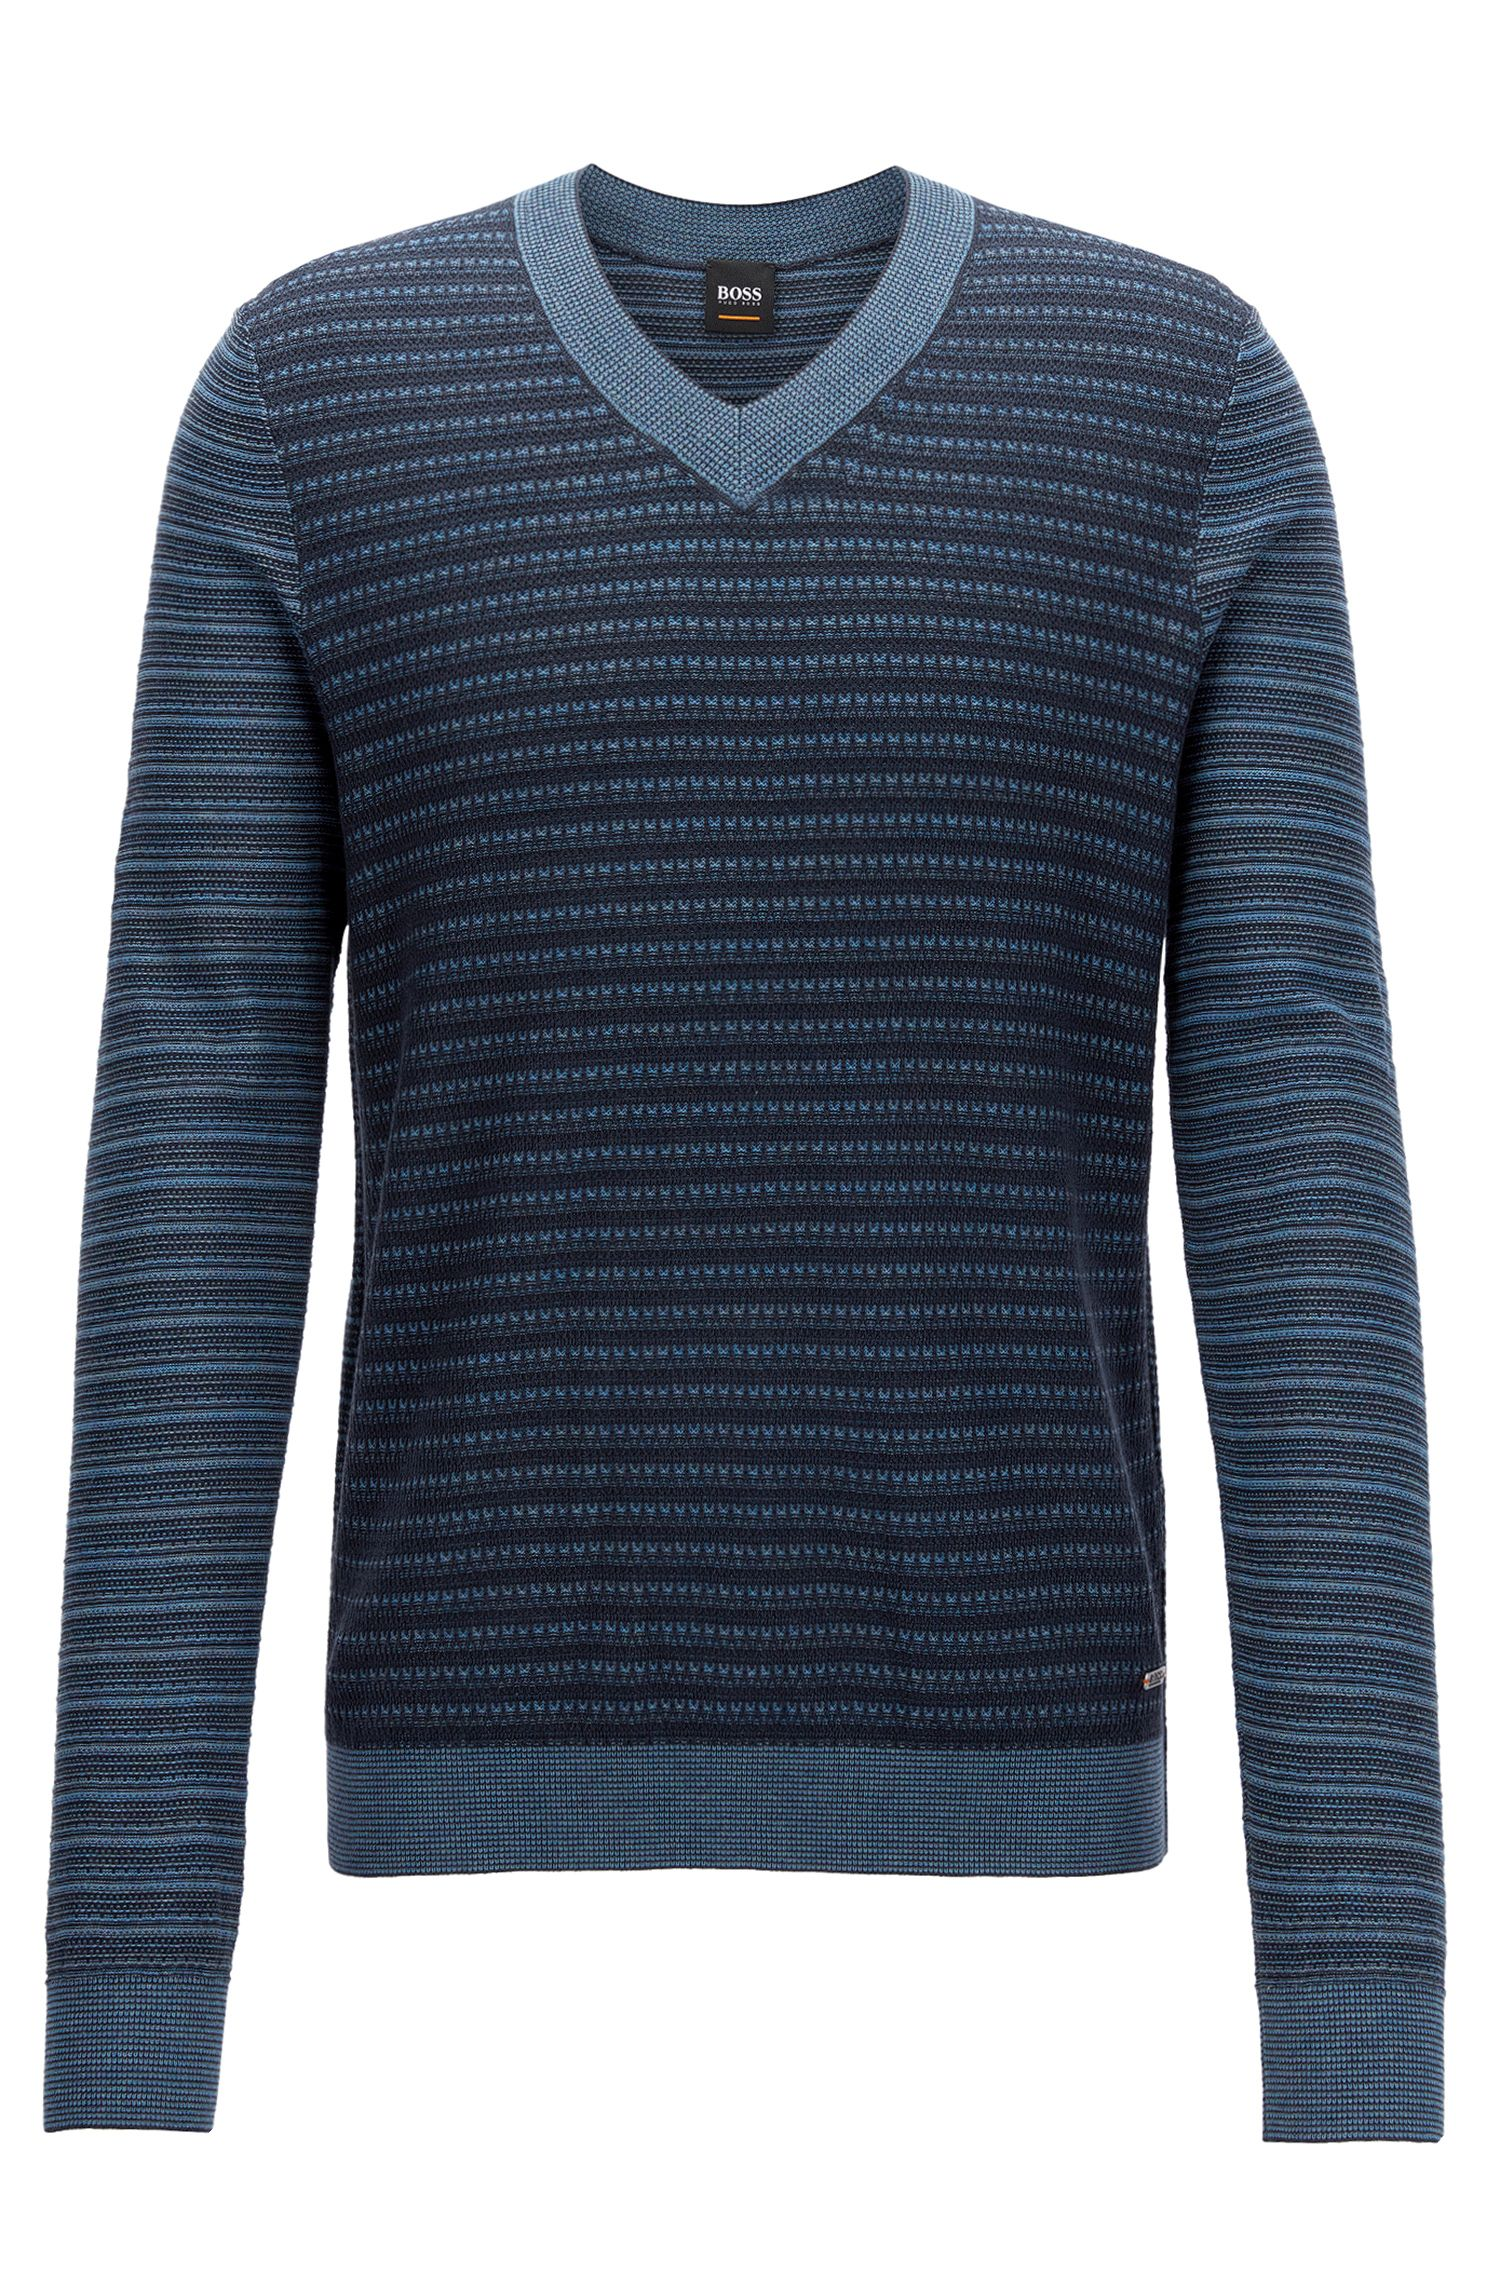 Cotton-blend V-neck sweater in multi-tonal 3D structures